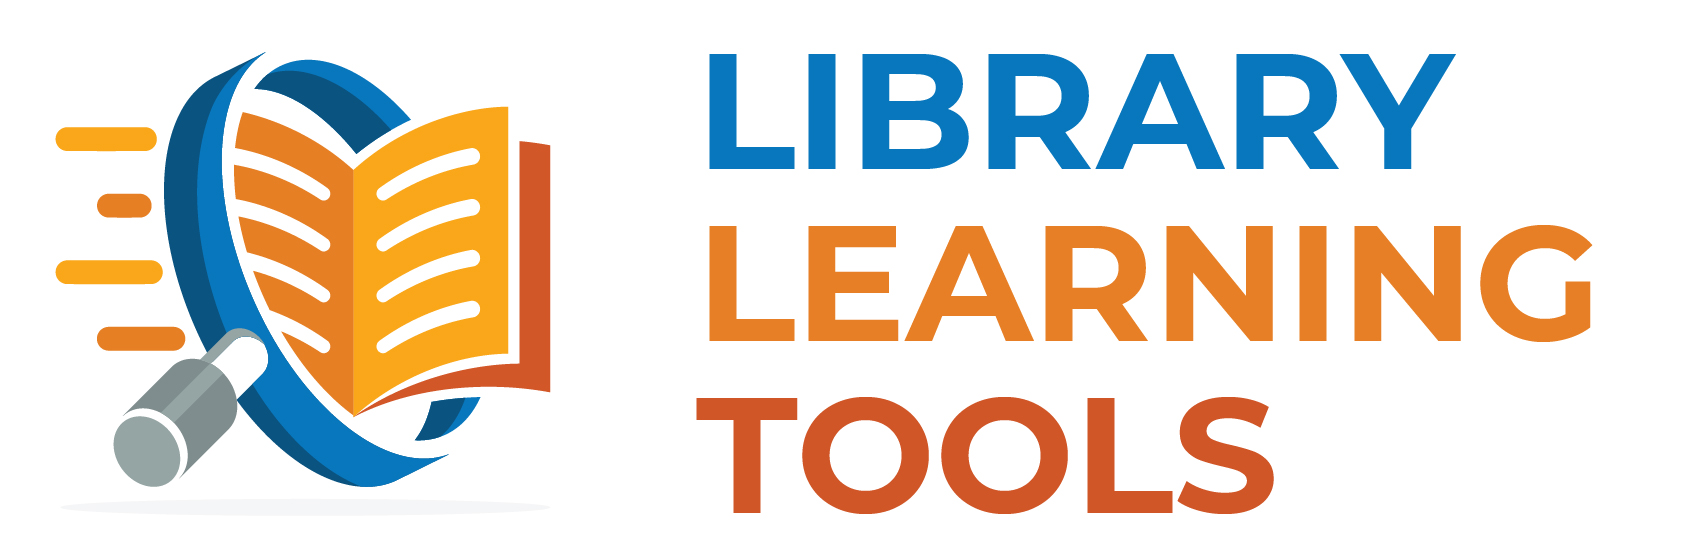 AS-LibraryLearningTools